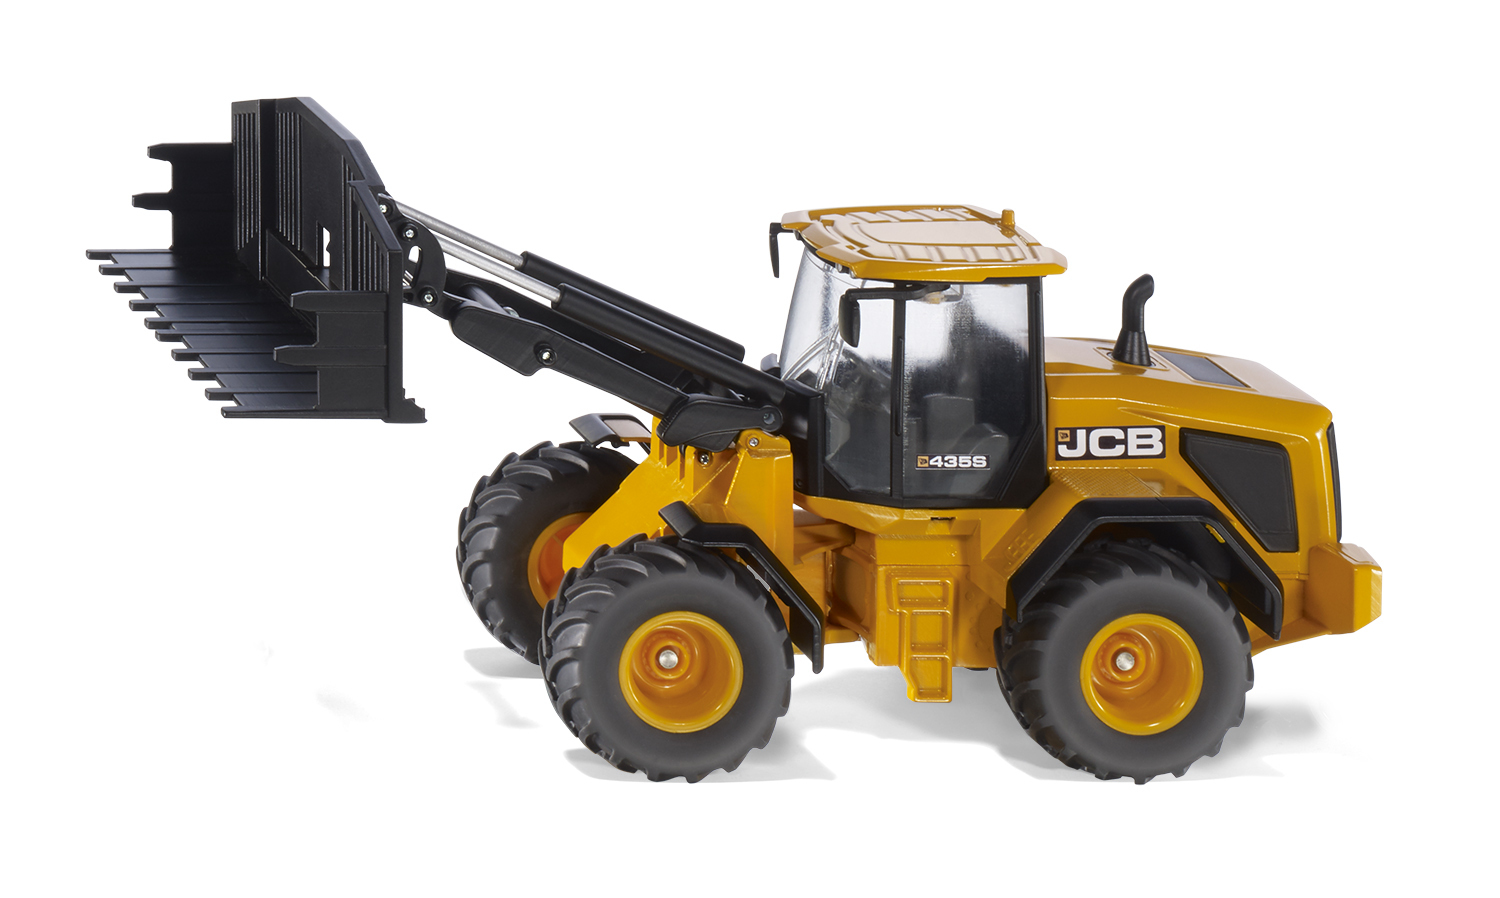 3663 - JCB Wheel Loader (1:32)